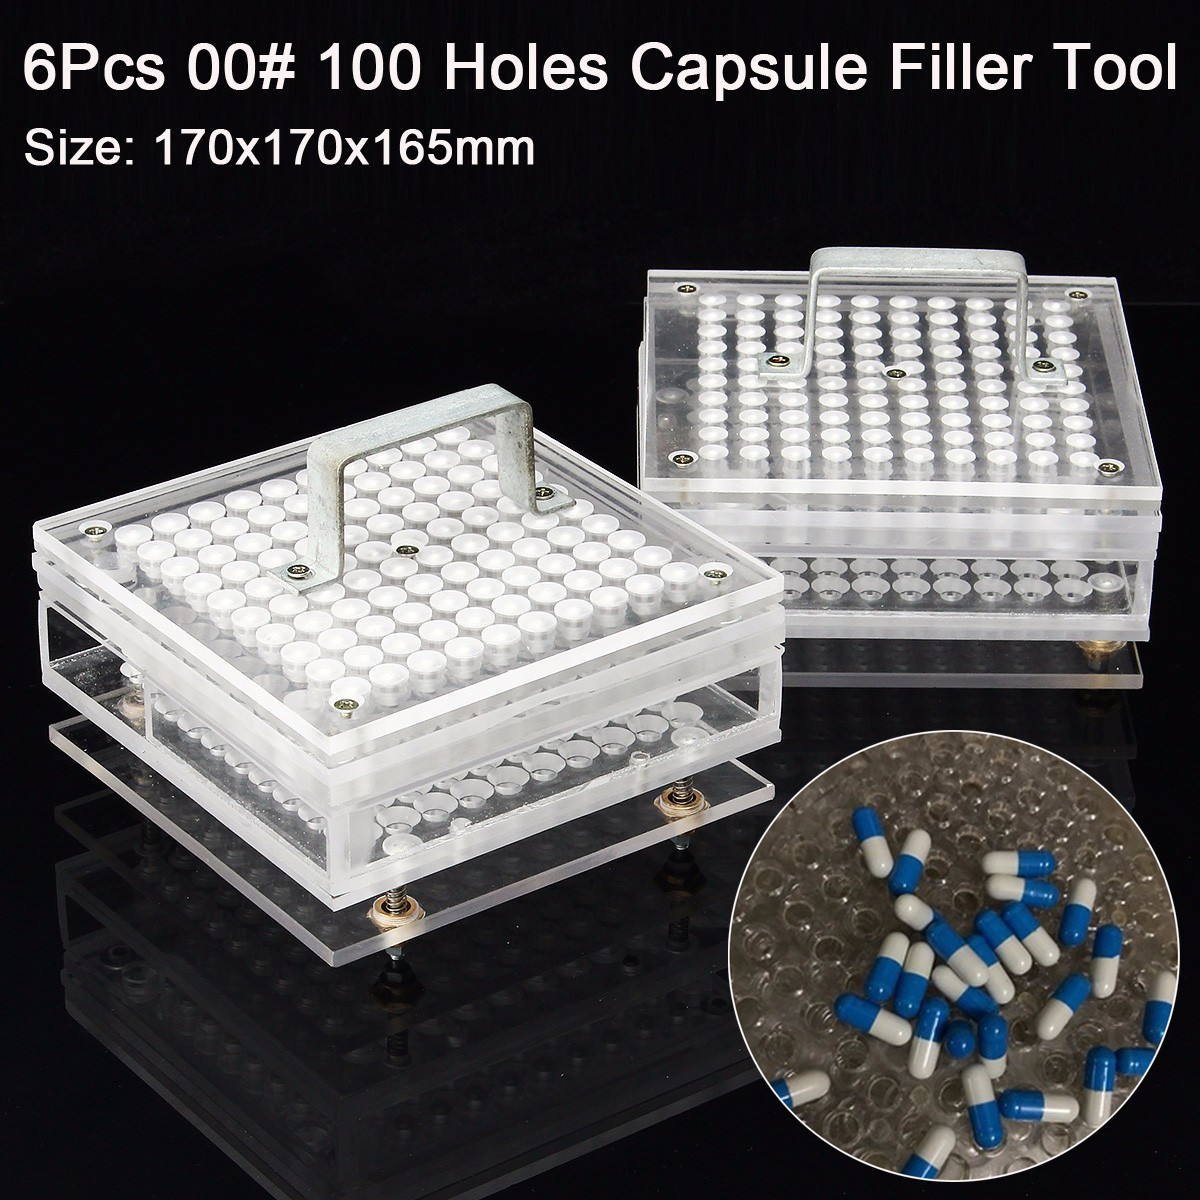 цена на 6 Pcs 00# 0# 100Holes Manual Capsule Filler Capsule Filling Machine Tool 170x170x165mm